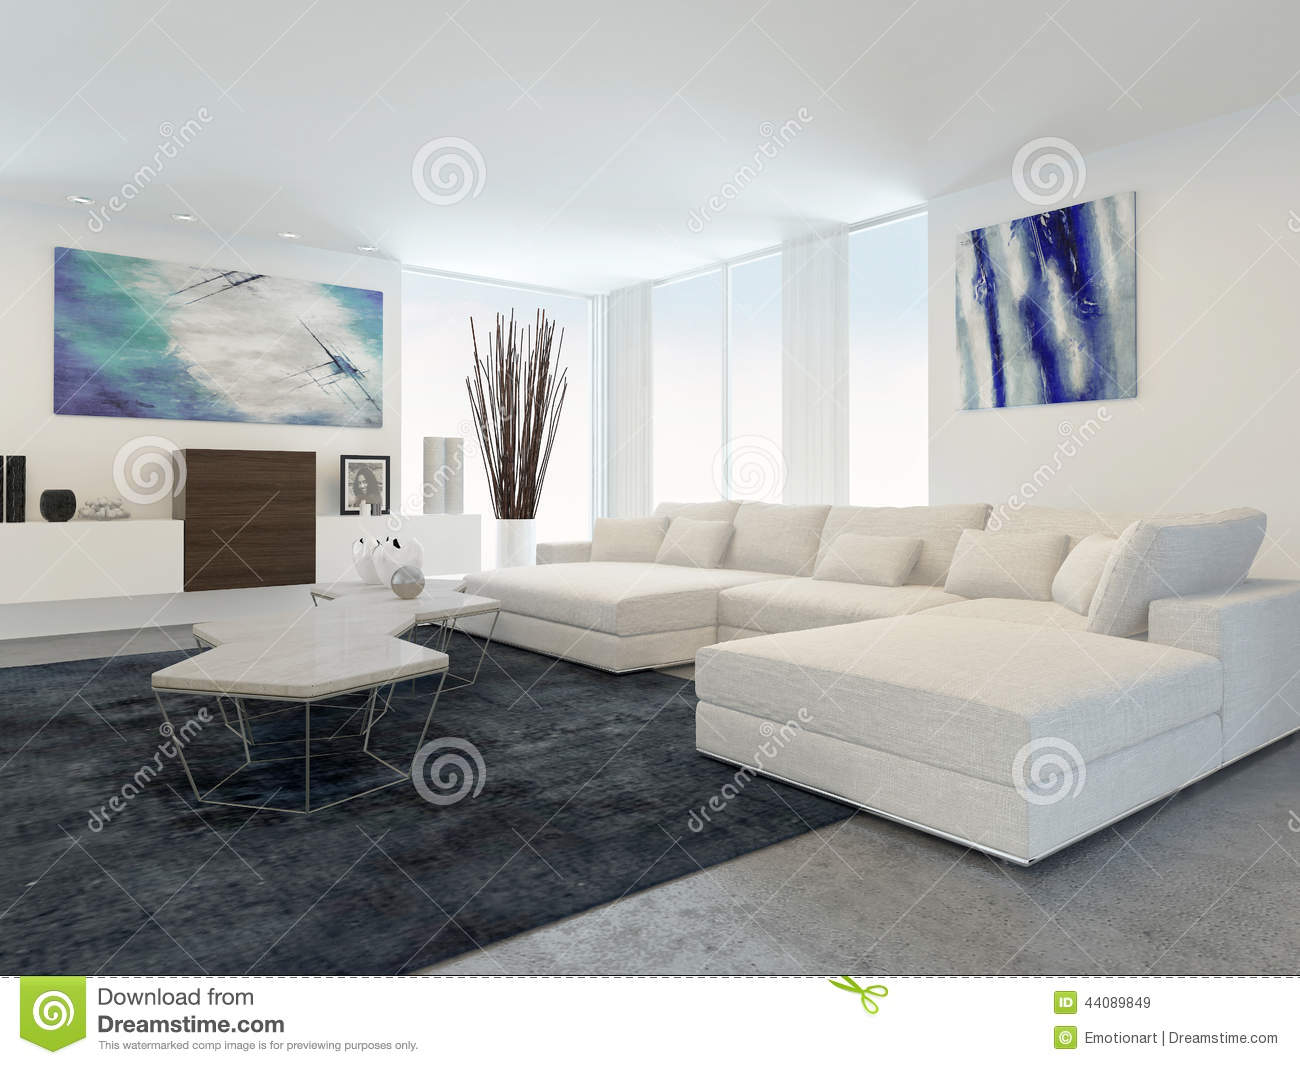 salon moderne avec les meubles blancs illustration stock image 44089849. Black Bedroom Furniture Sets. Home Design Ideas